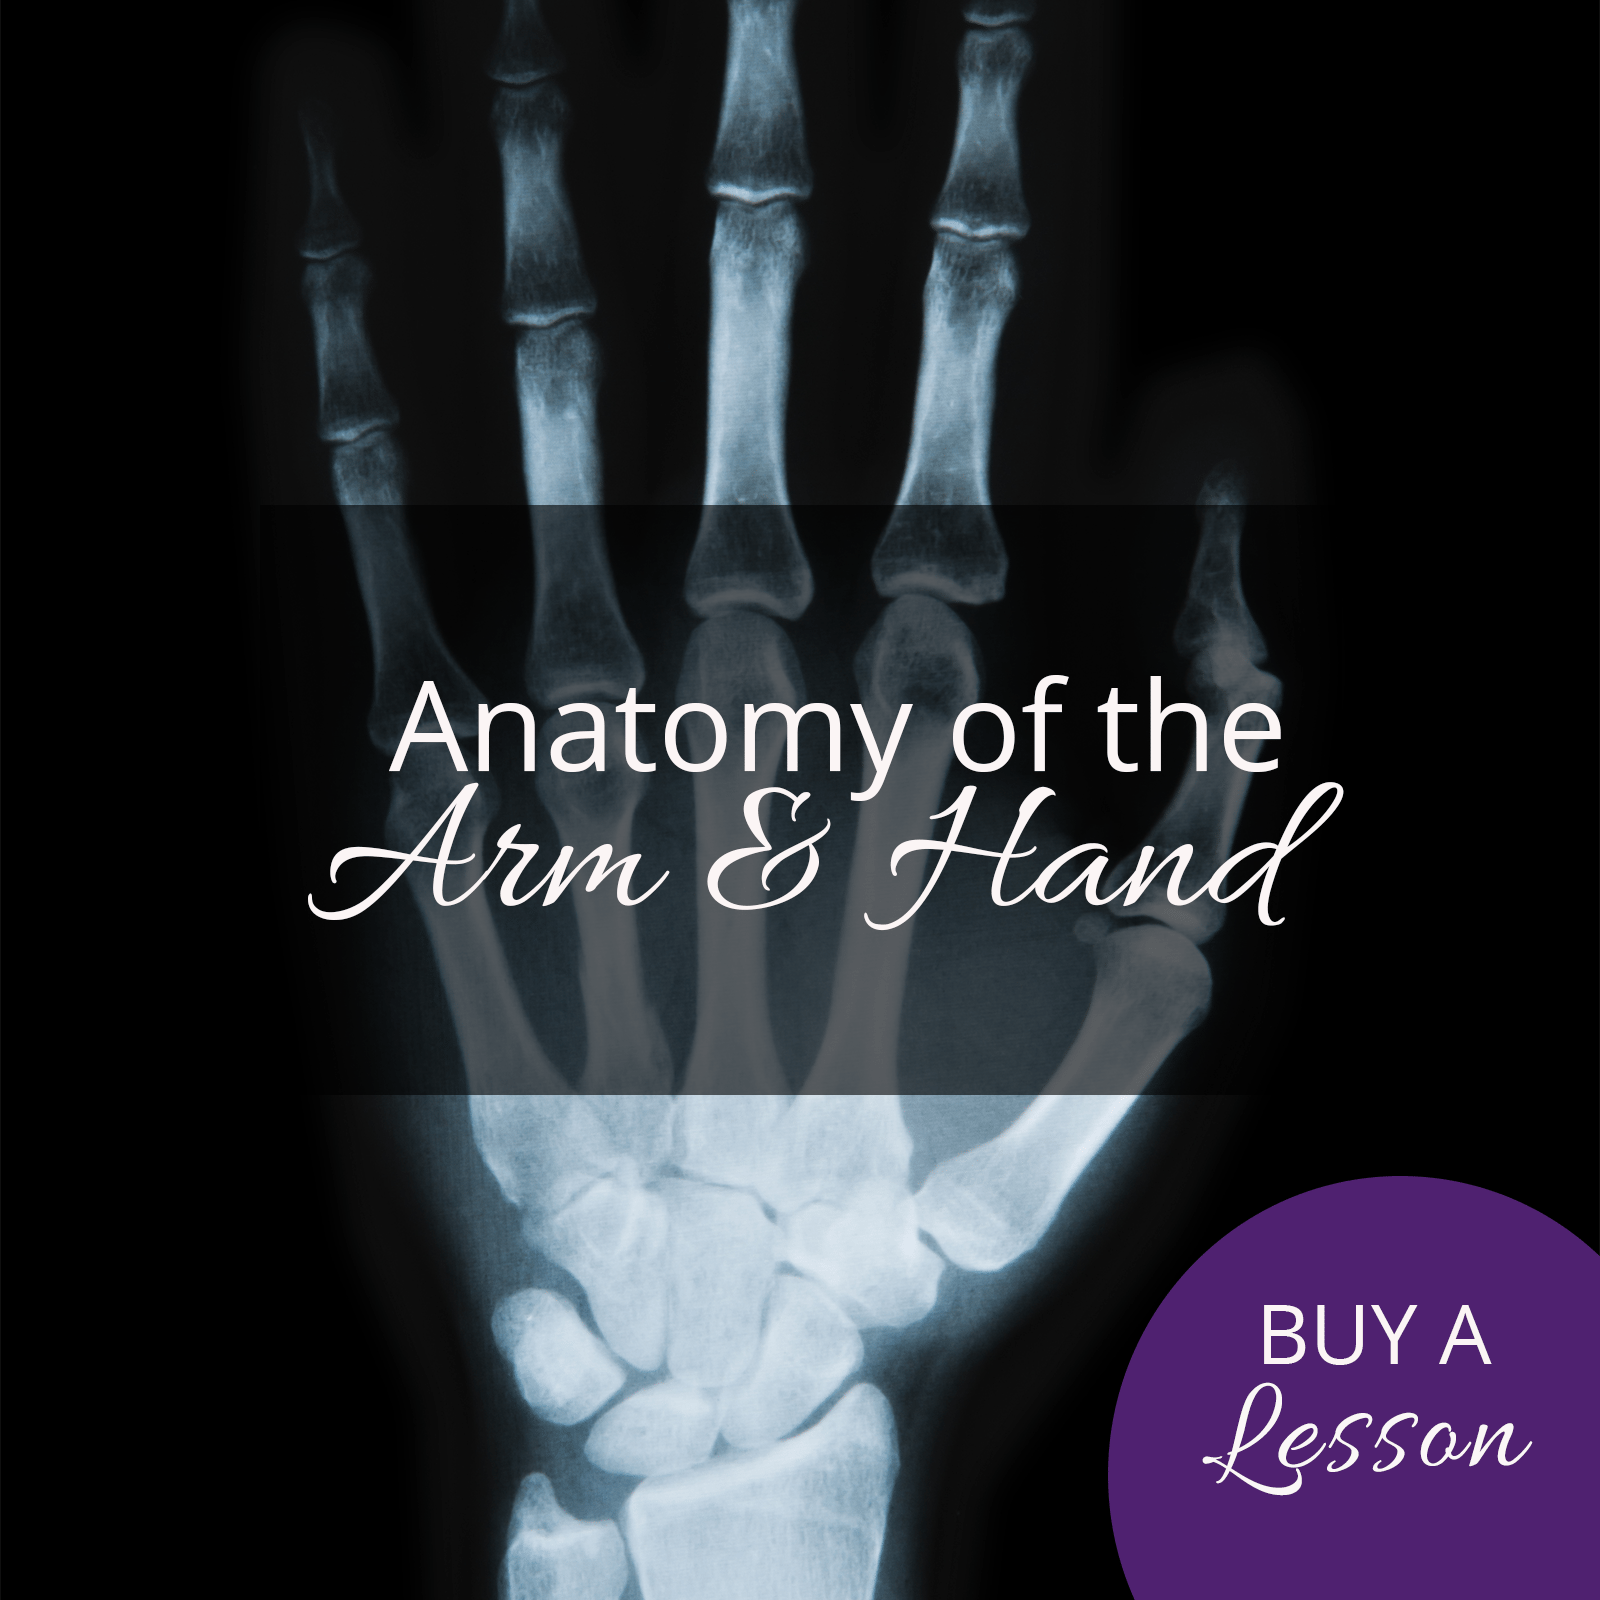 anatomy-of-arm-and-hand – The Art of Education